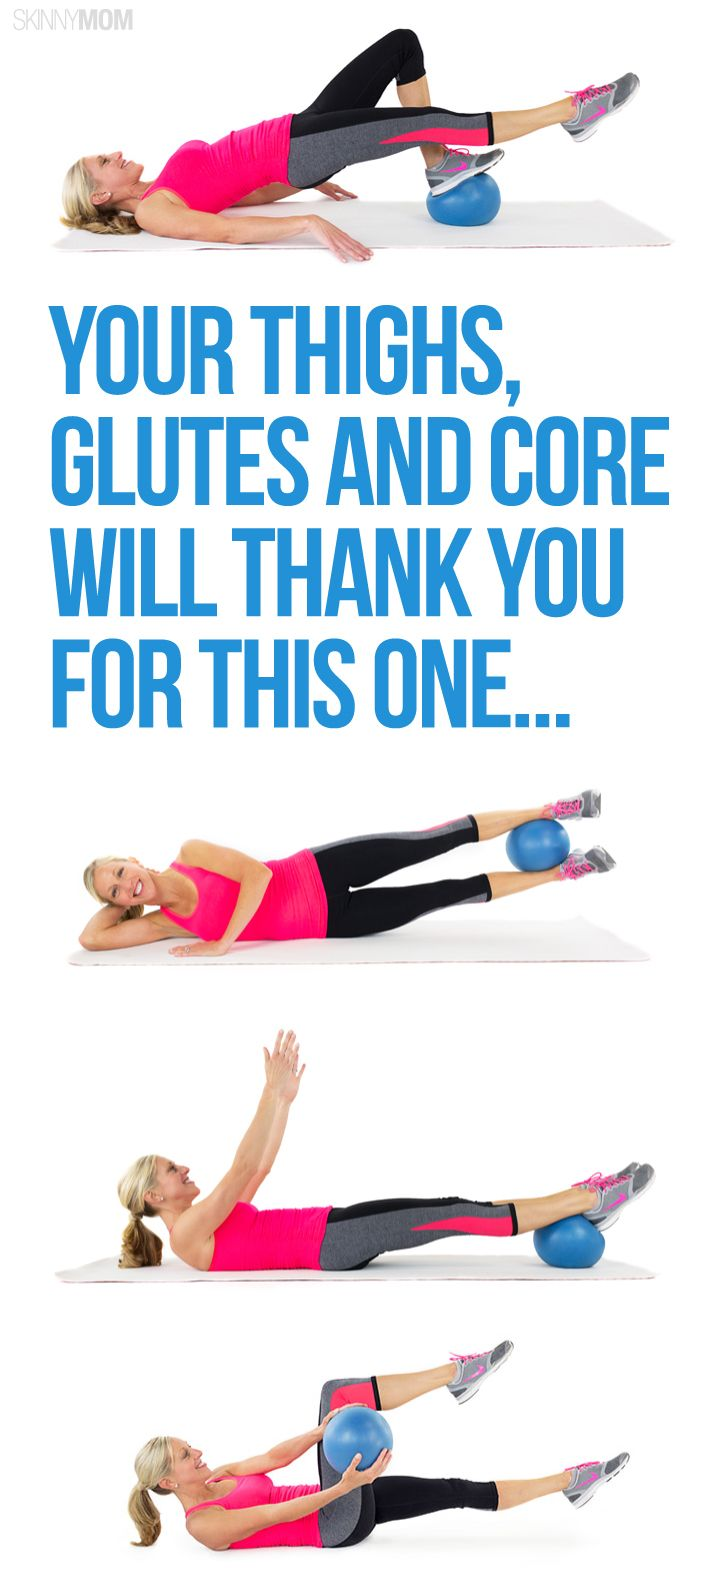 This workout will get you lean legs and a tight stomach!